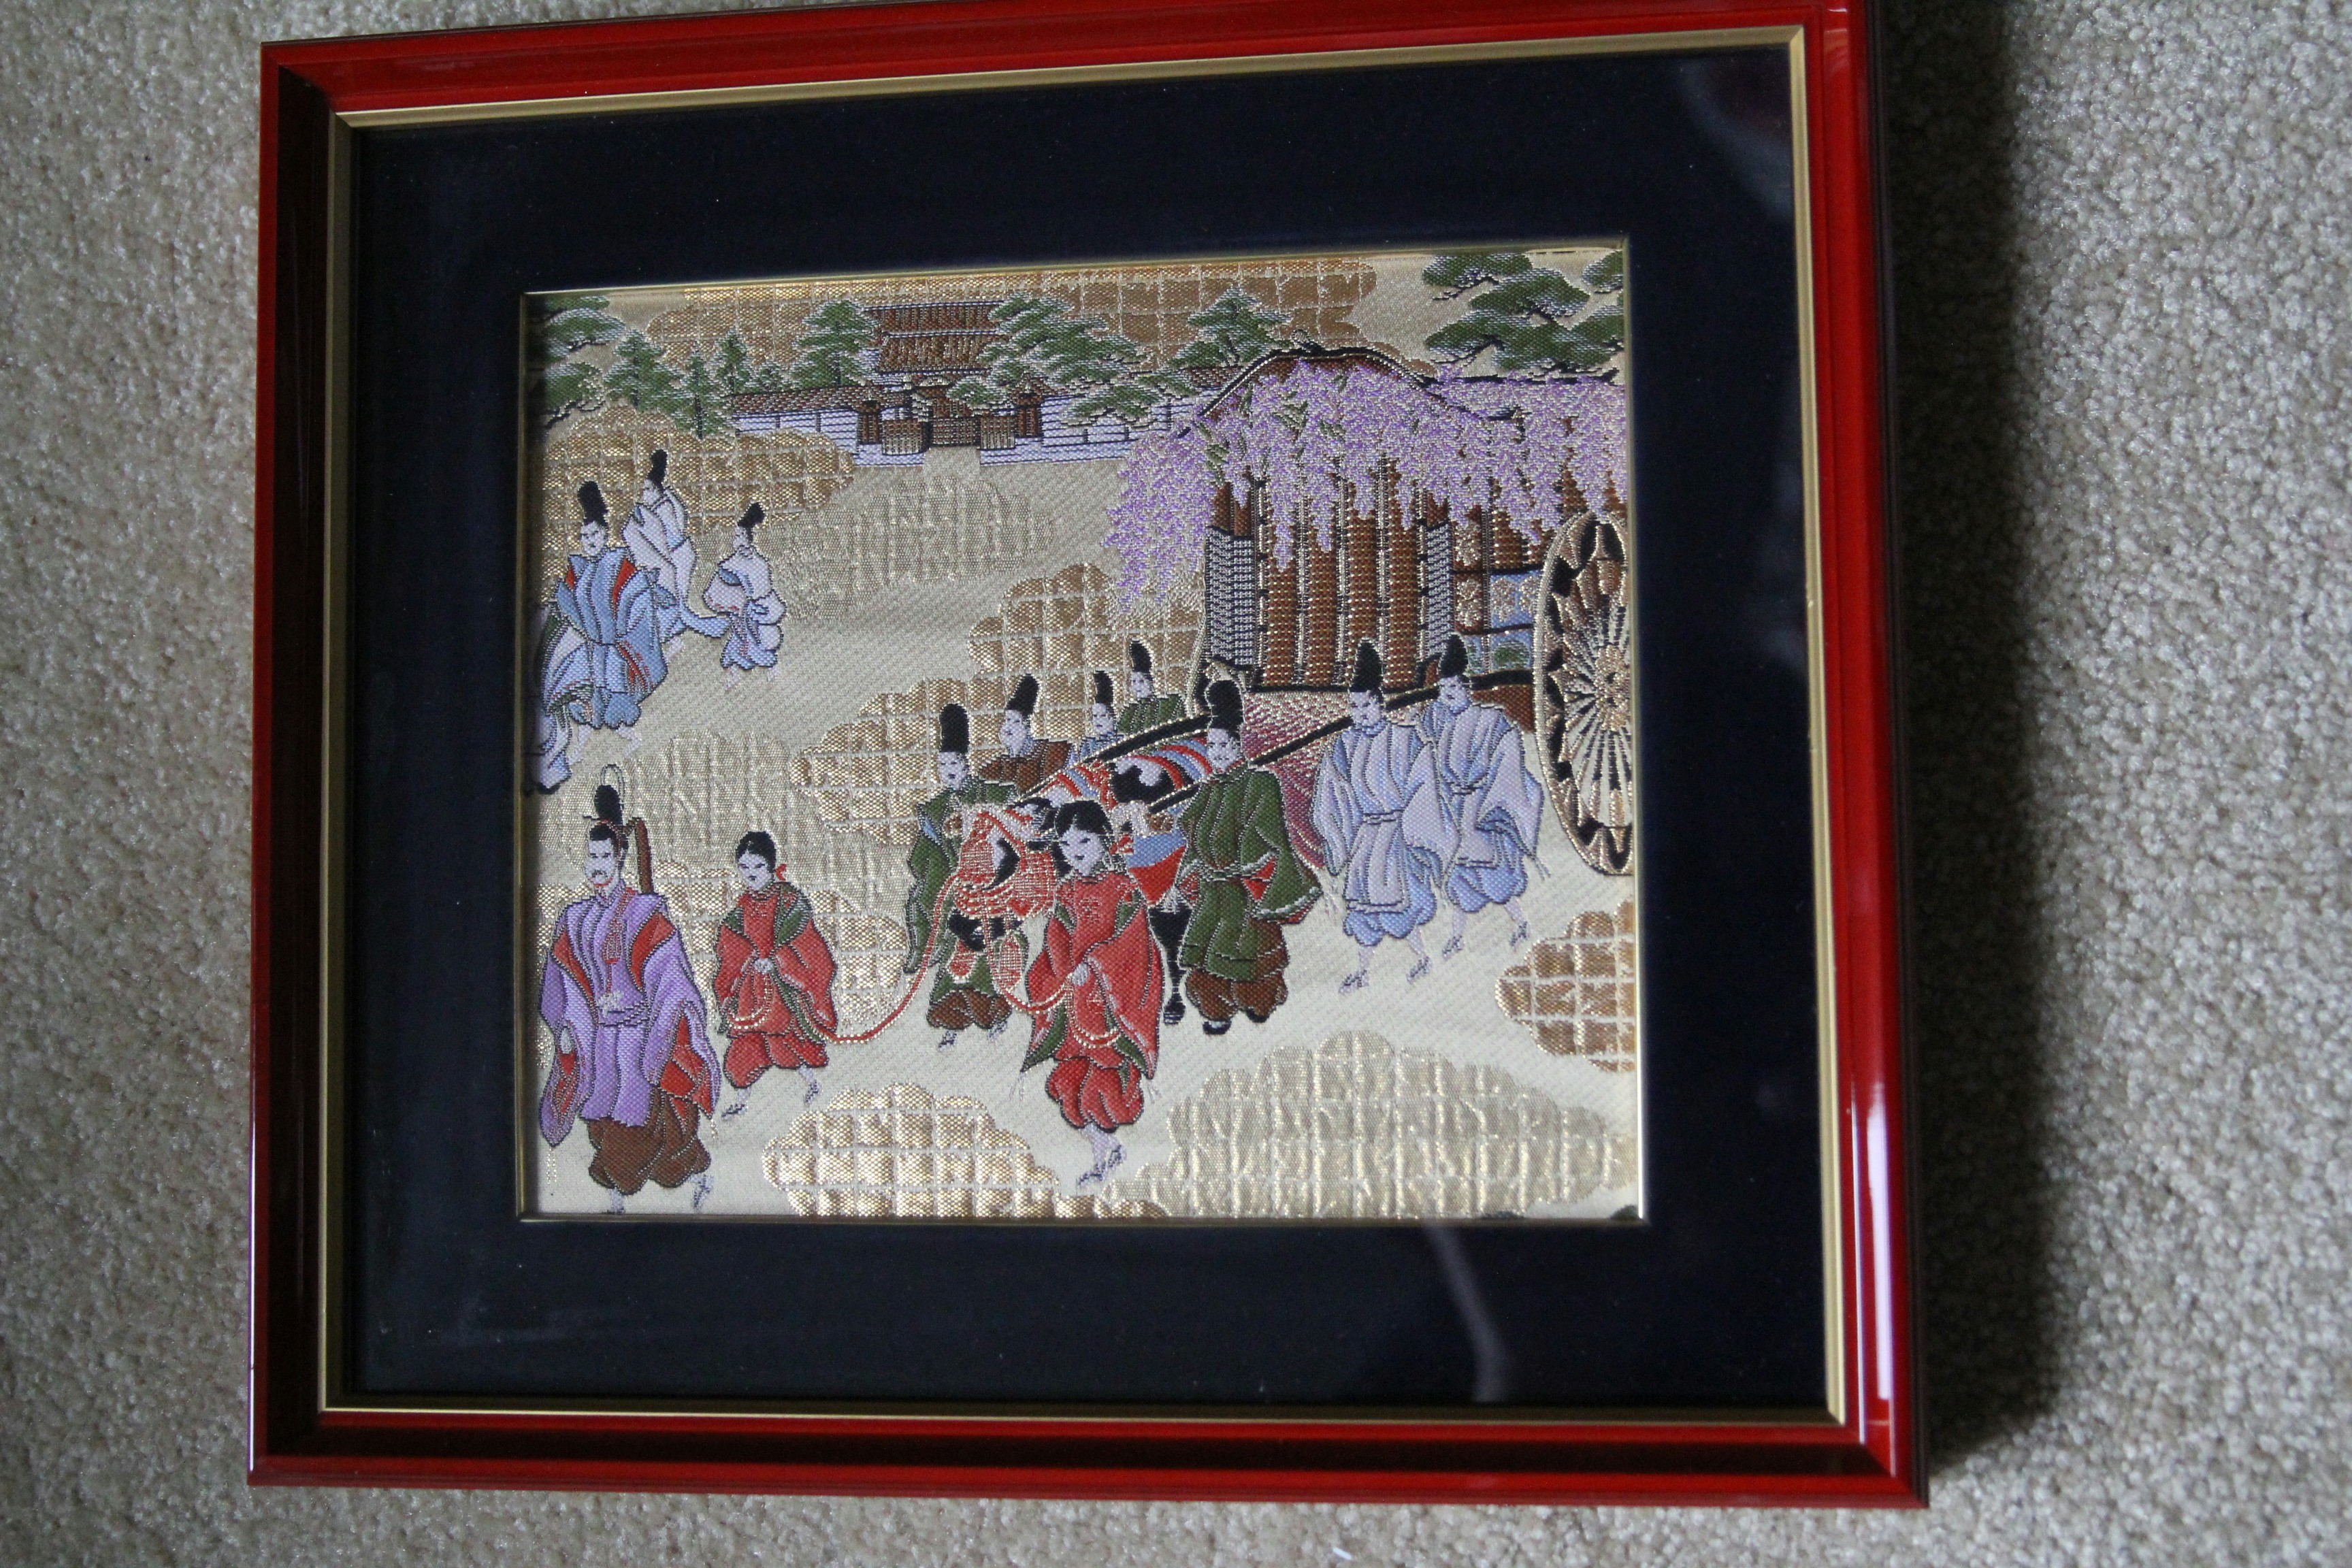 Framed Kyonishiki Tapestry from Nishi-jin, Kyoto, Japan (original), Cart Process